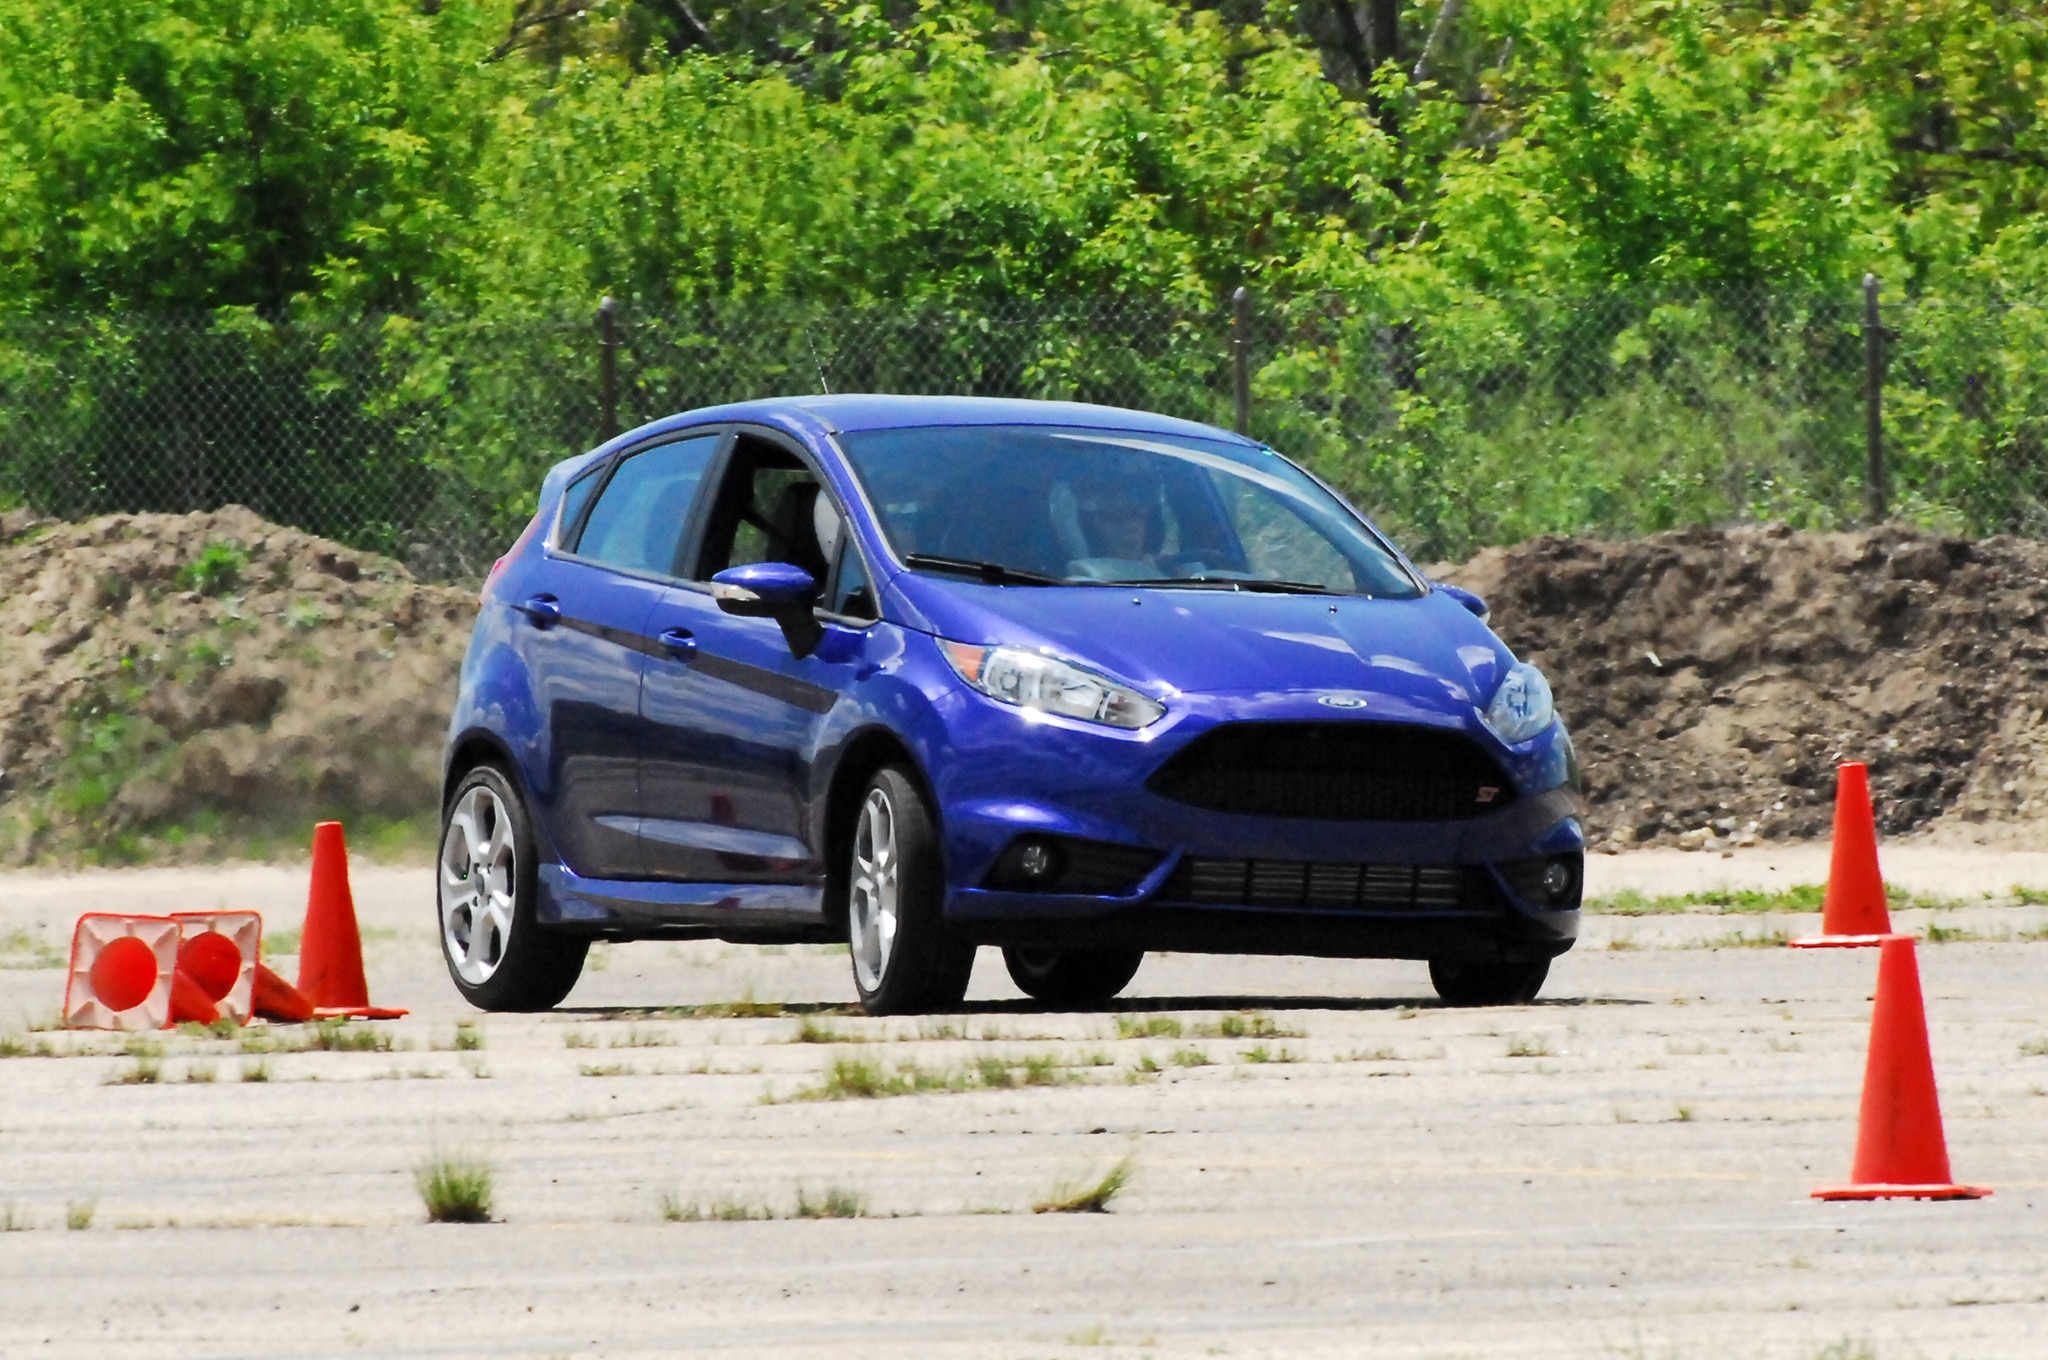 2014 Ford Fiesta St Motion Front Three Quarter 51